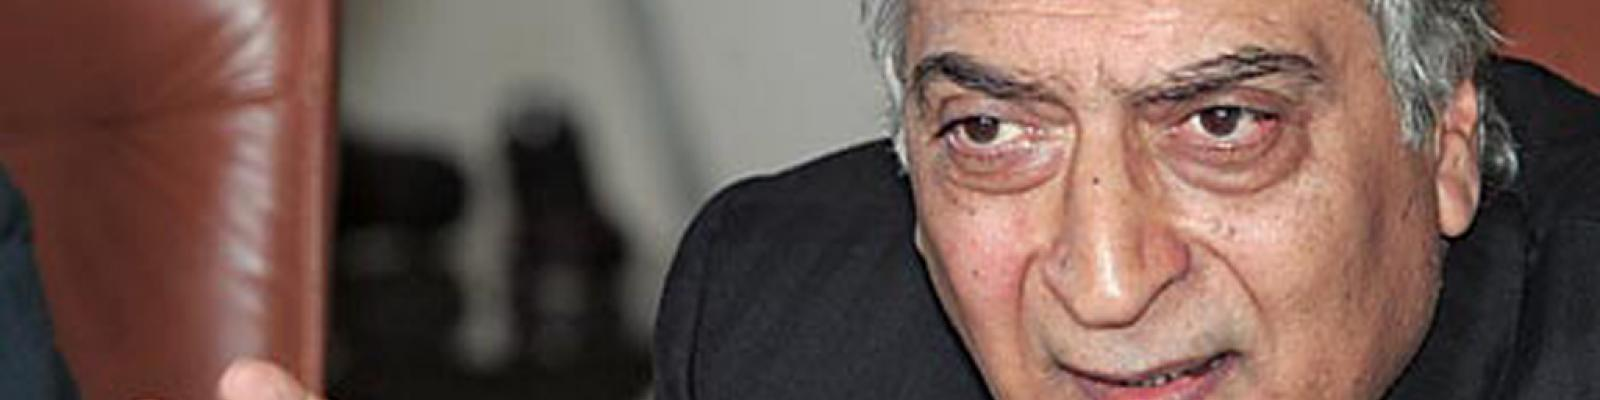 Kanwal Sibal of EWI Board discusses India's stance on Syria